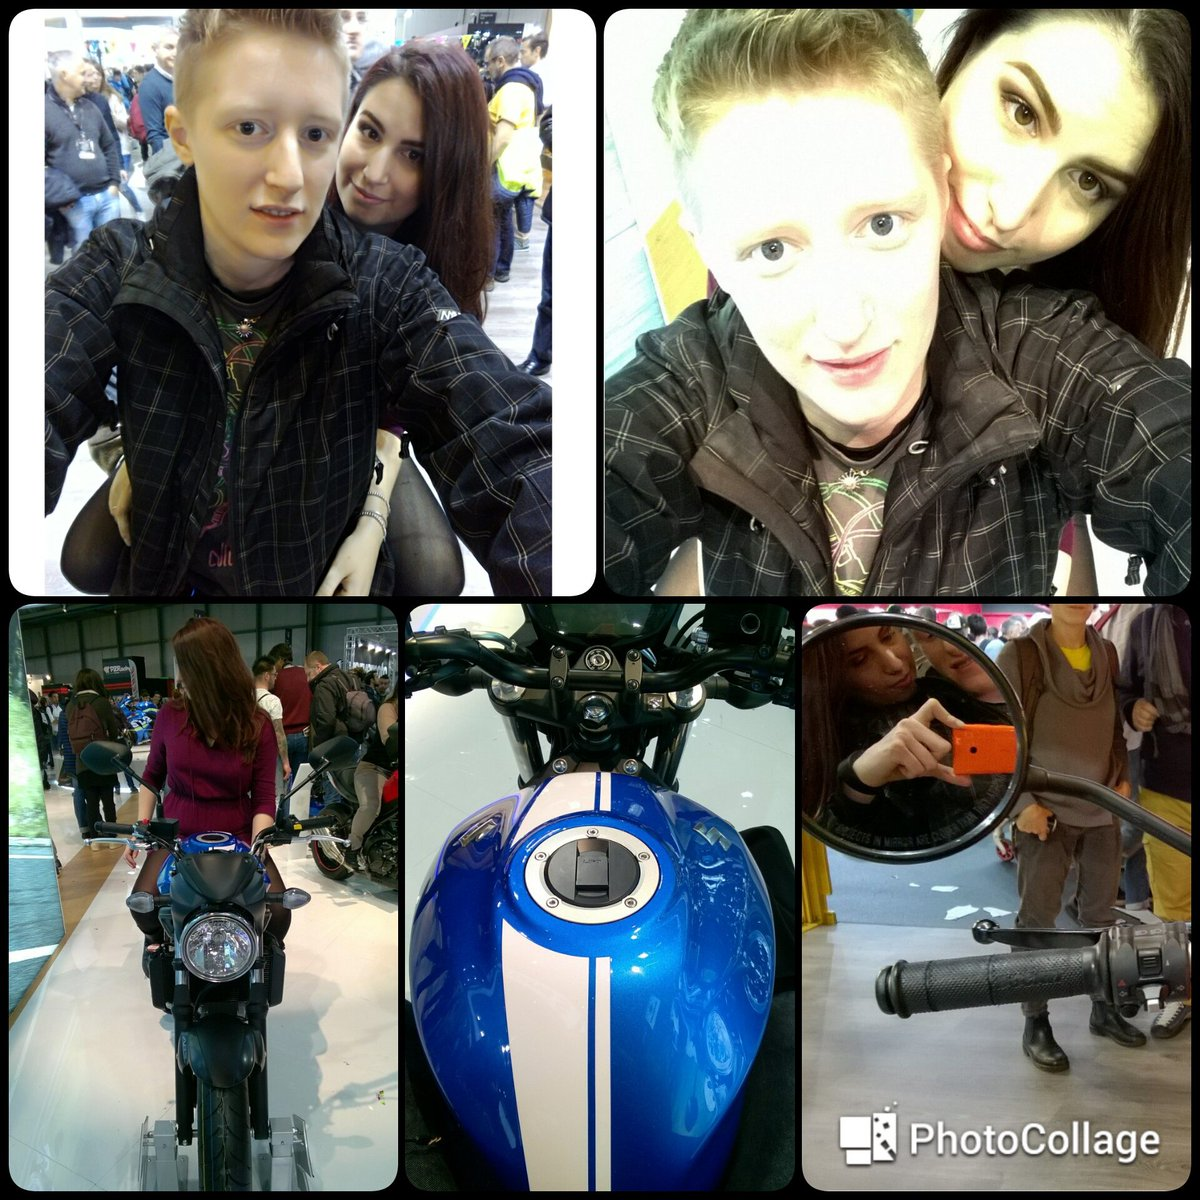 Eicma2016  #EICMA2016 @official_eicma #EICMA #EICMAgirls #donneinsella #iloveyou #monamour #couplelove  I love you, to the moon and backpic.twitter.com/lLG96HlDL7